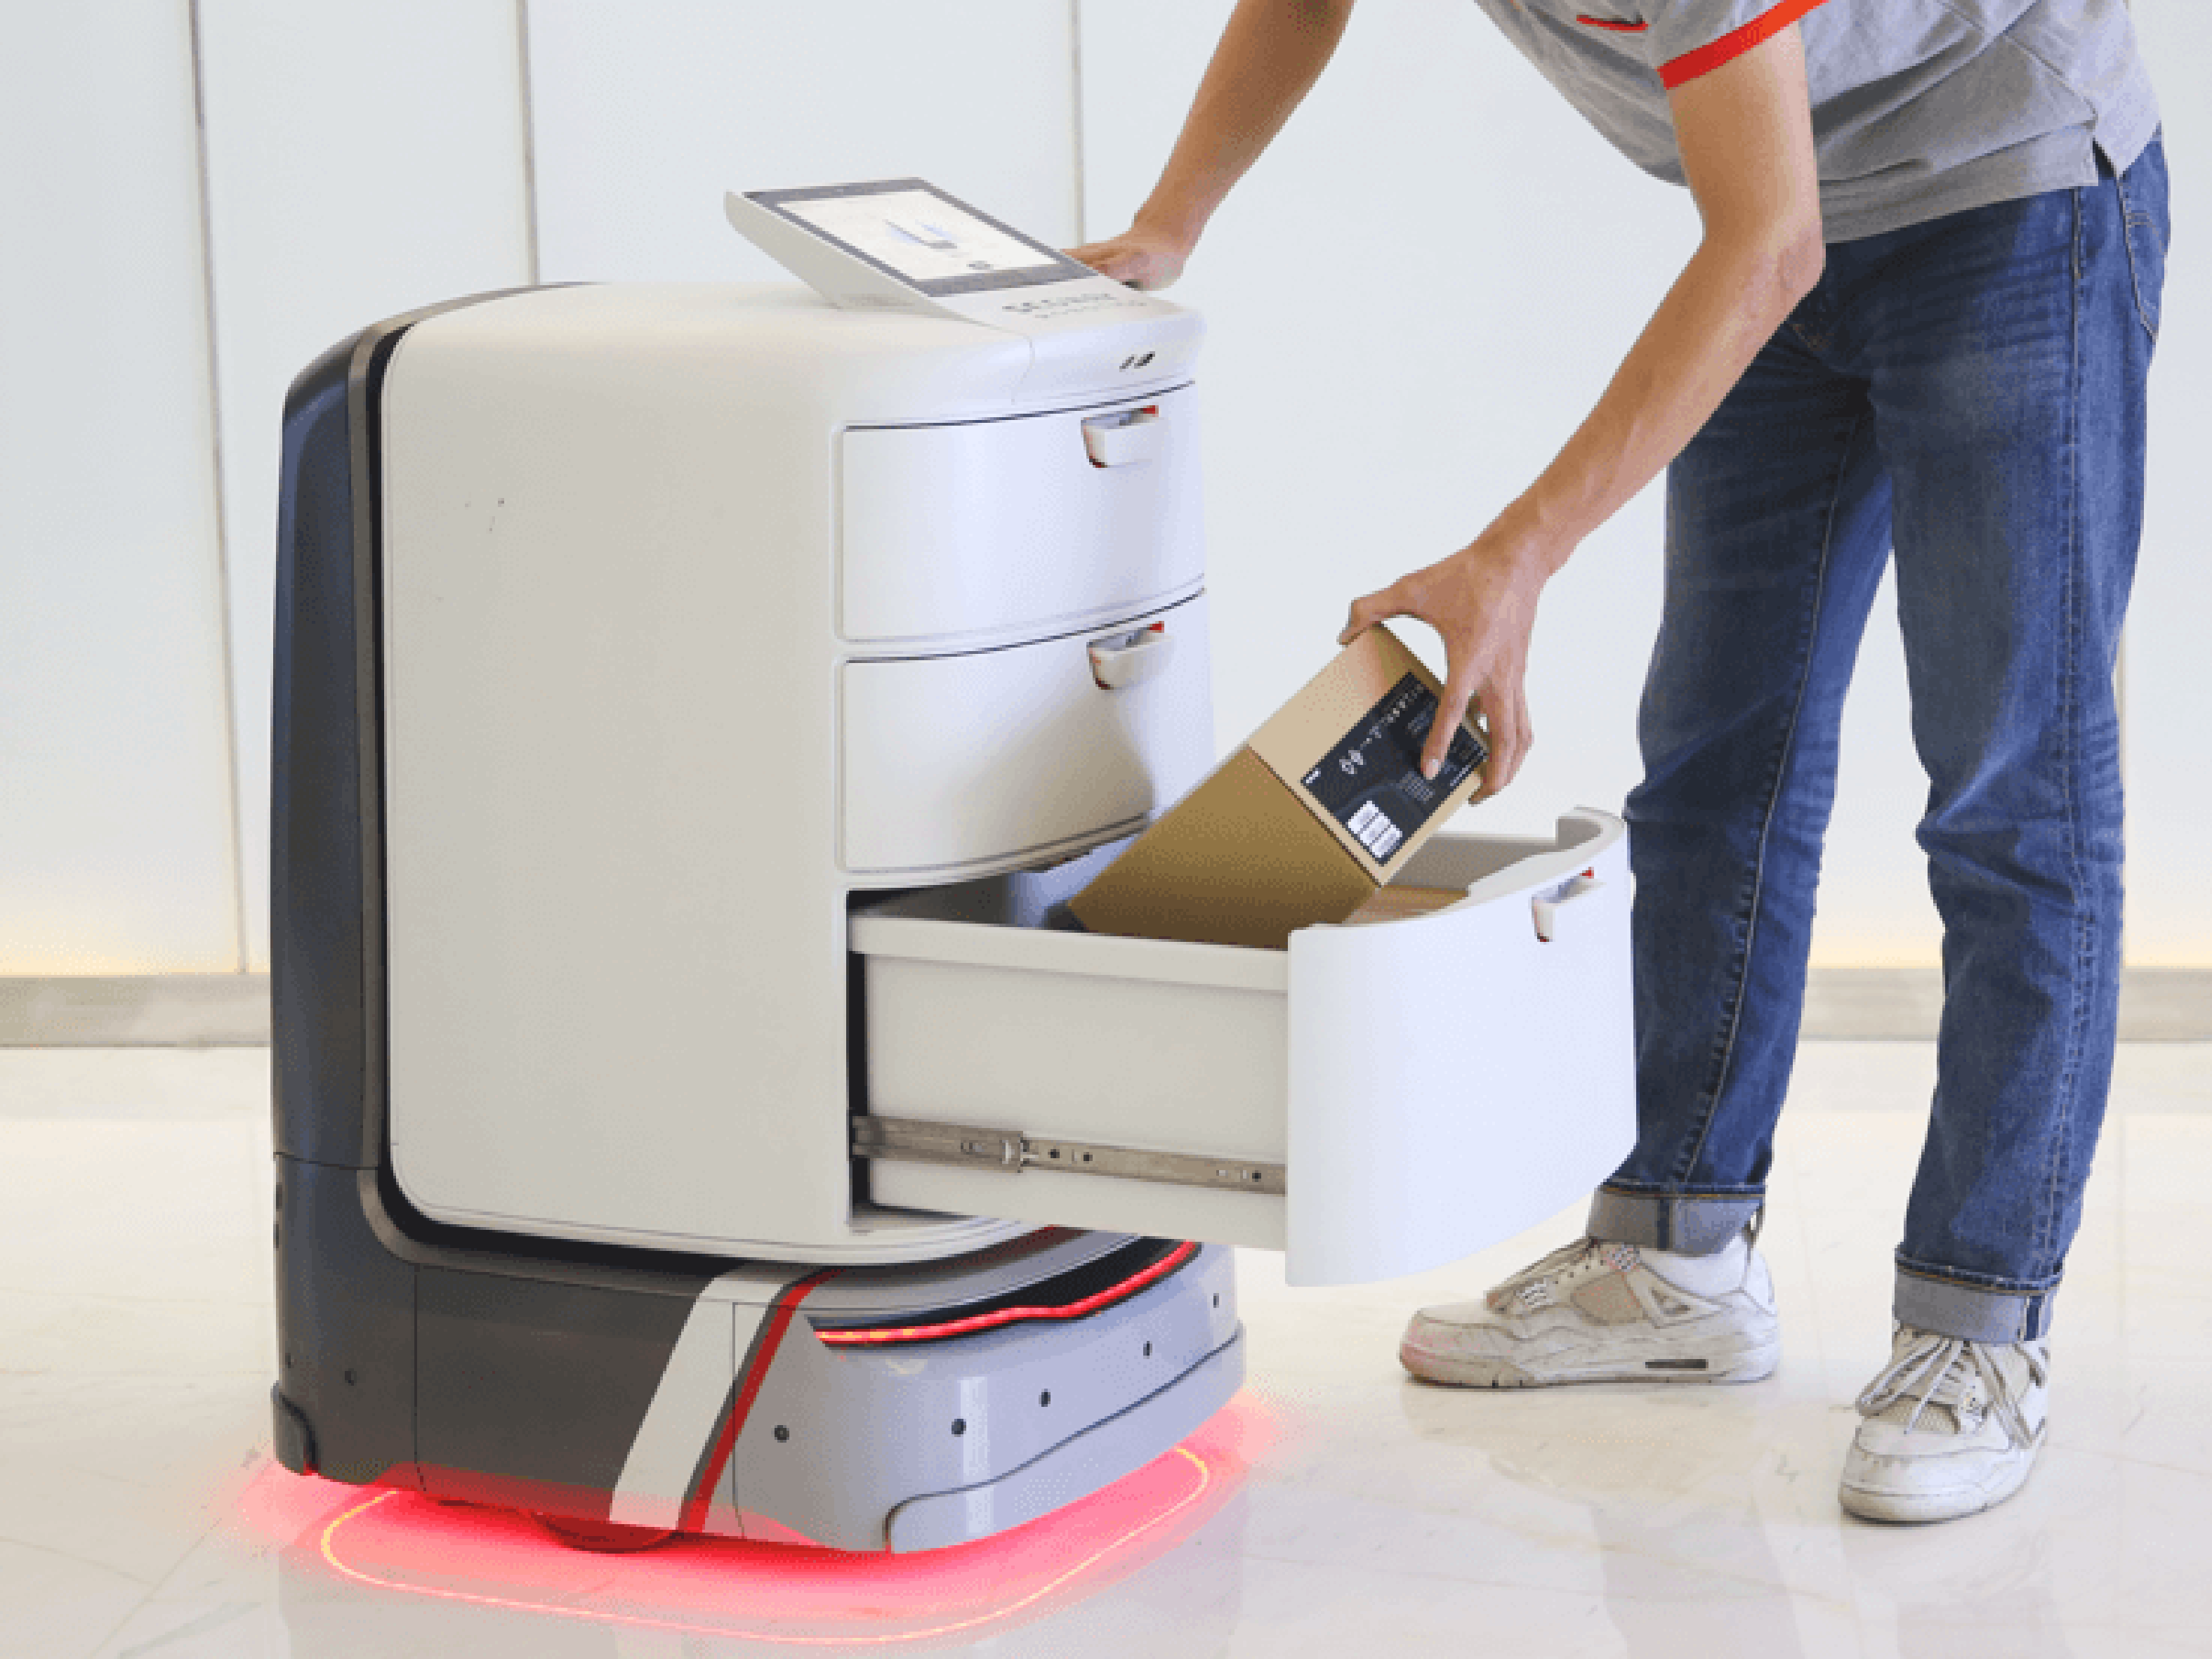 Ninebot's first autonomous delivery robot debuted in CES, 2019. PHOTO: credit to Jeff Wufu for Segway-Ninebot